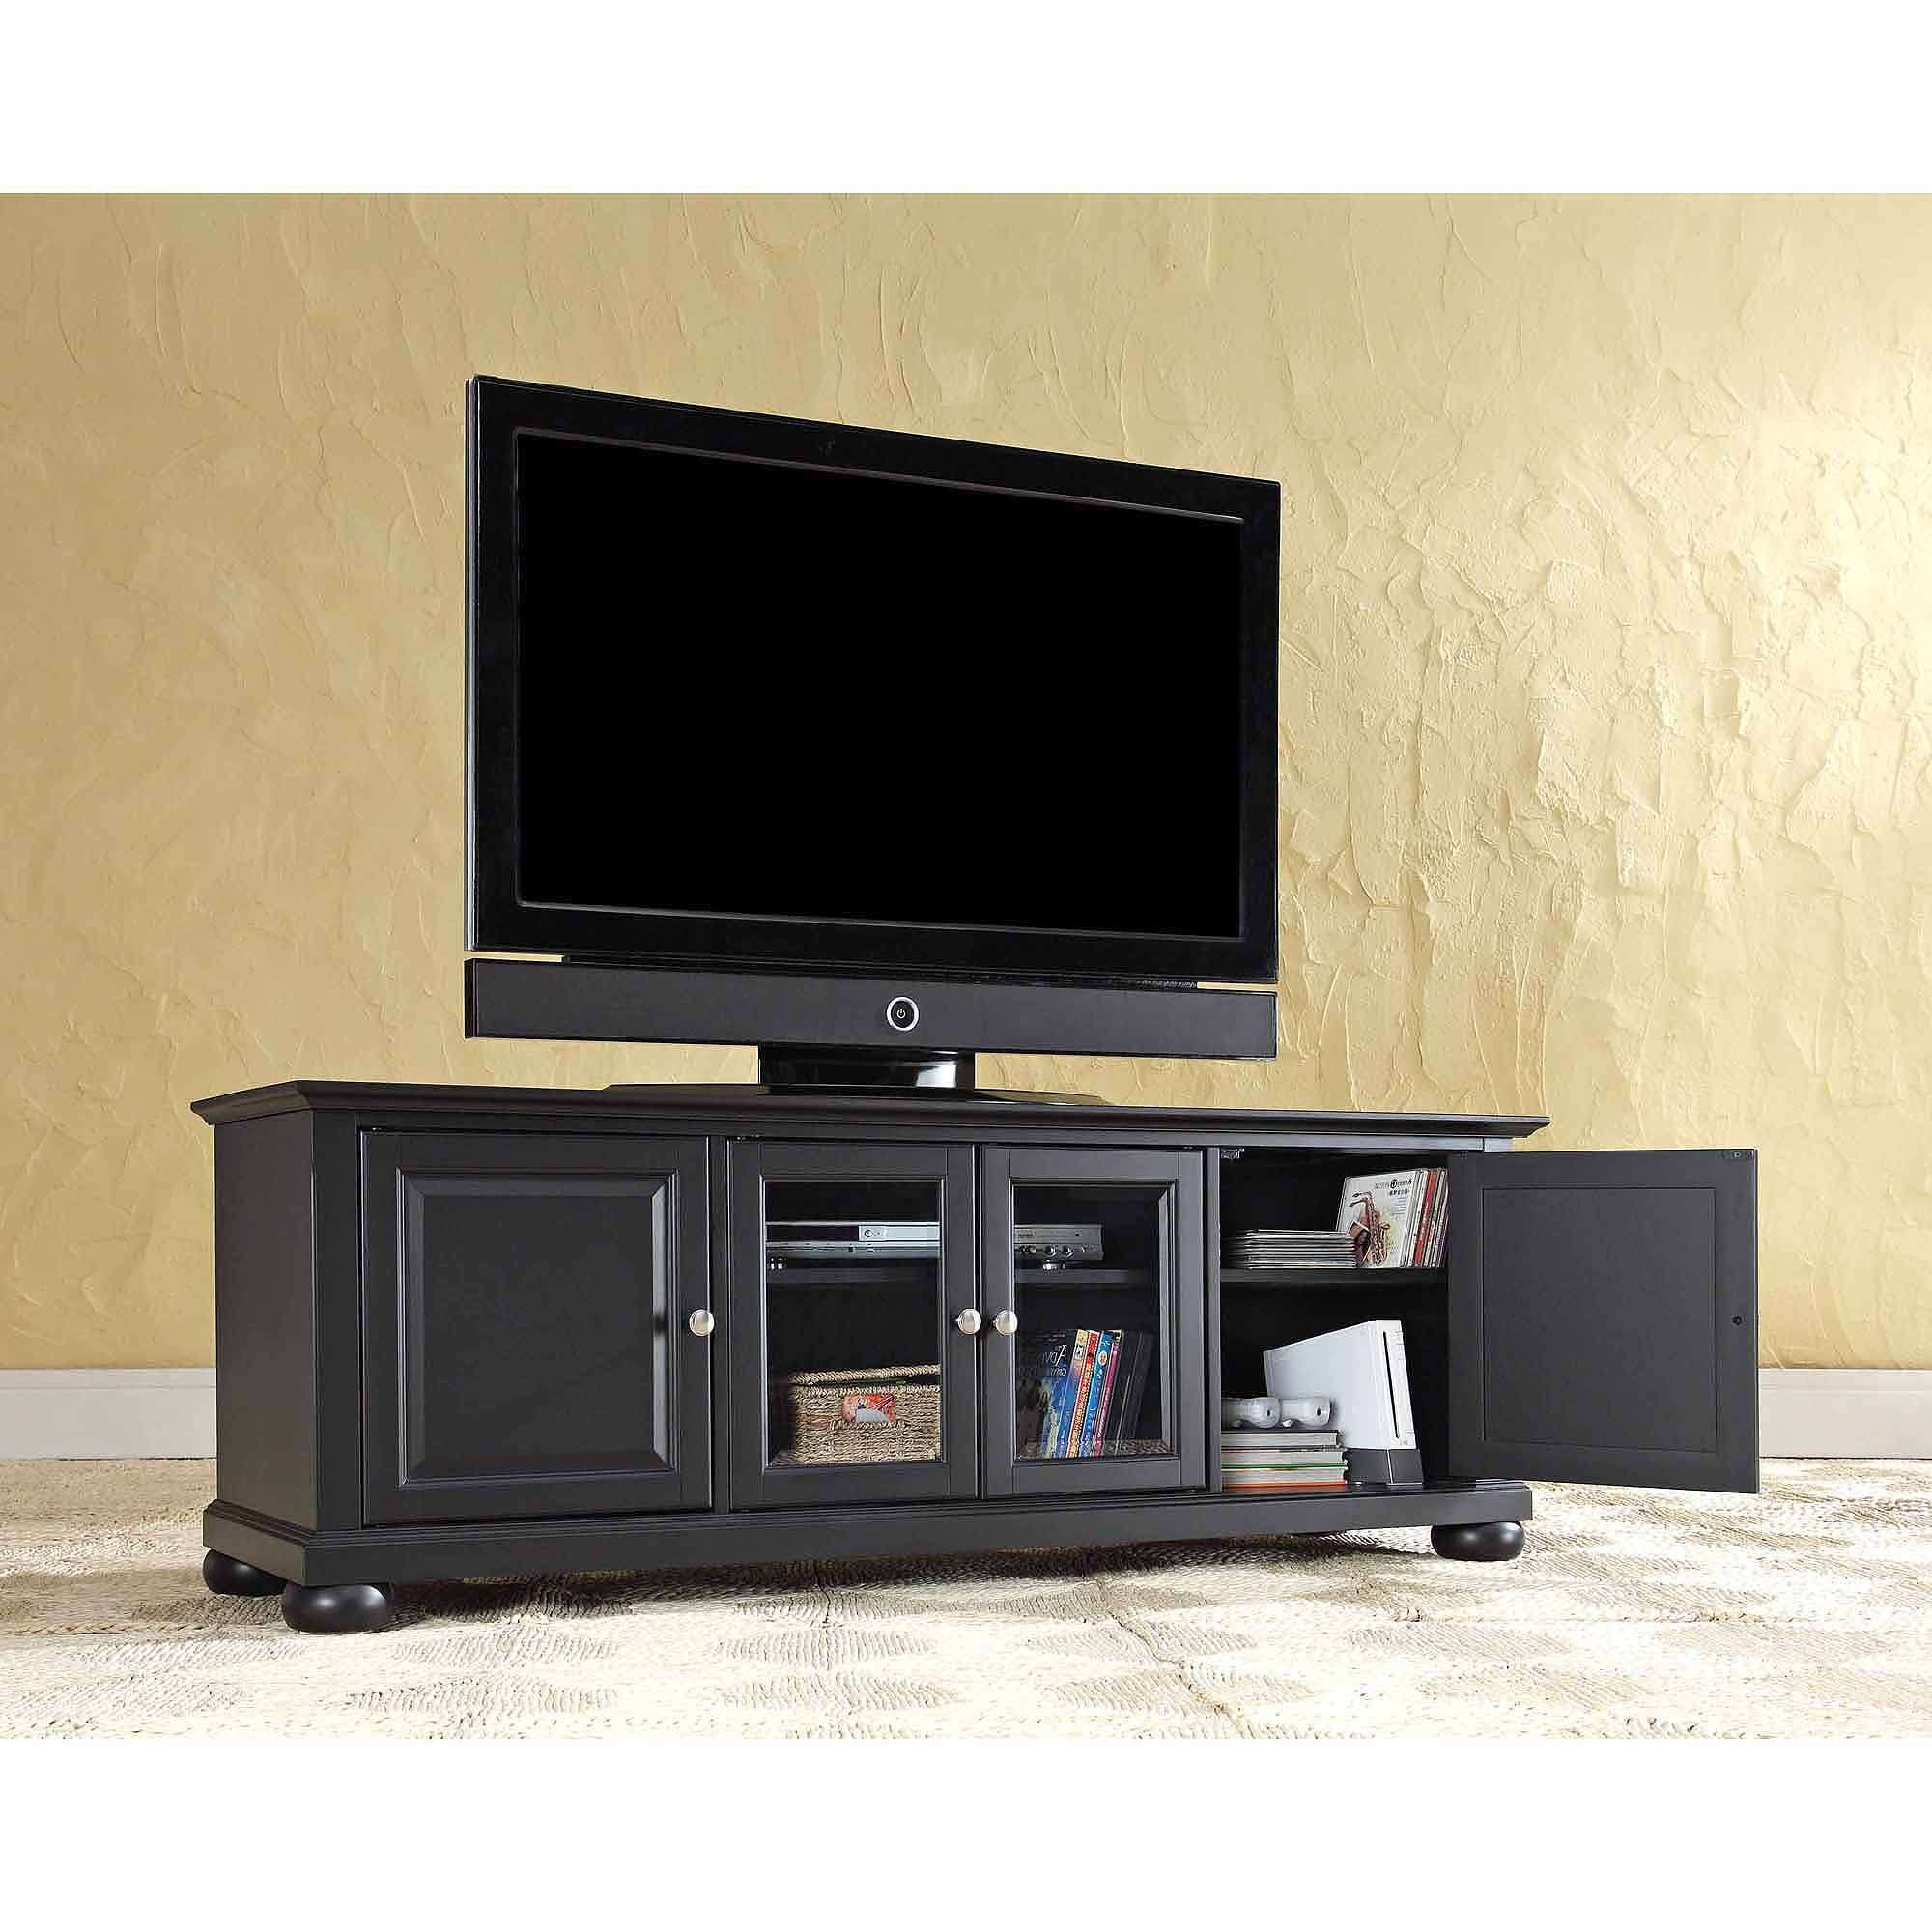 Tv Stand : Tv Stands Corner Tvnd For Inch Flat Screen Remarkable Regarding Corner 60 Inch Tv Stands (View 13 of 15)